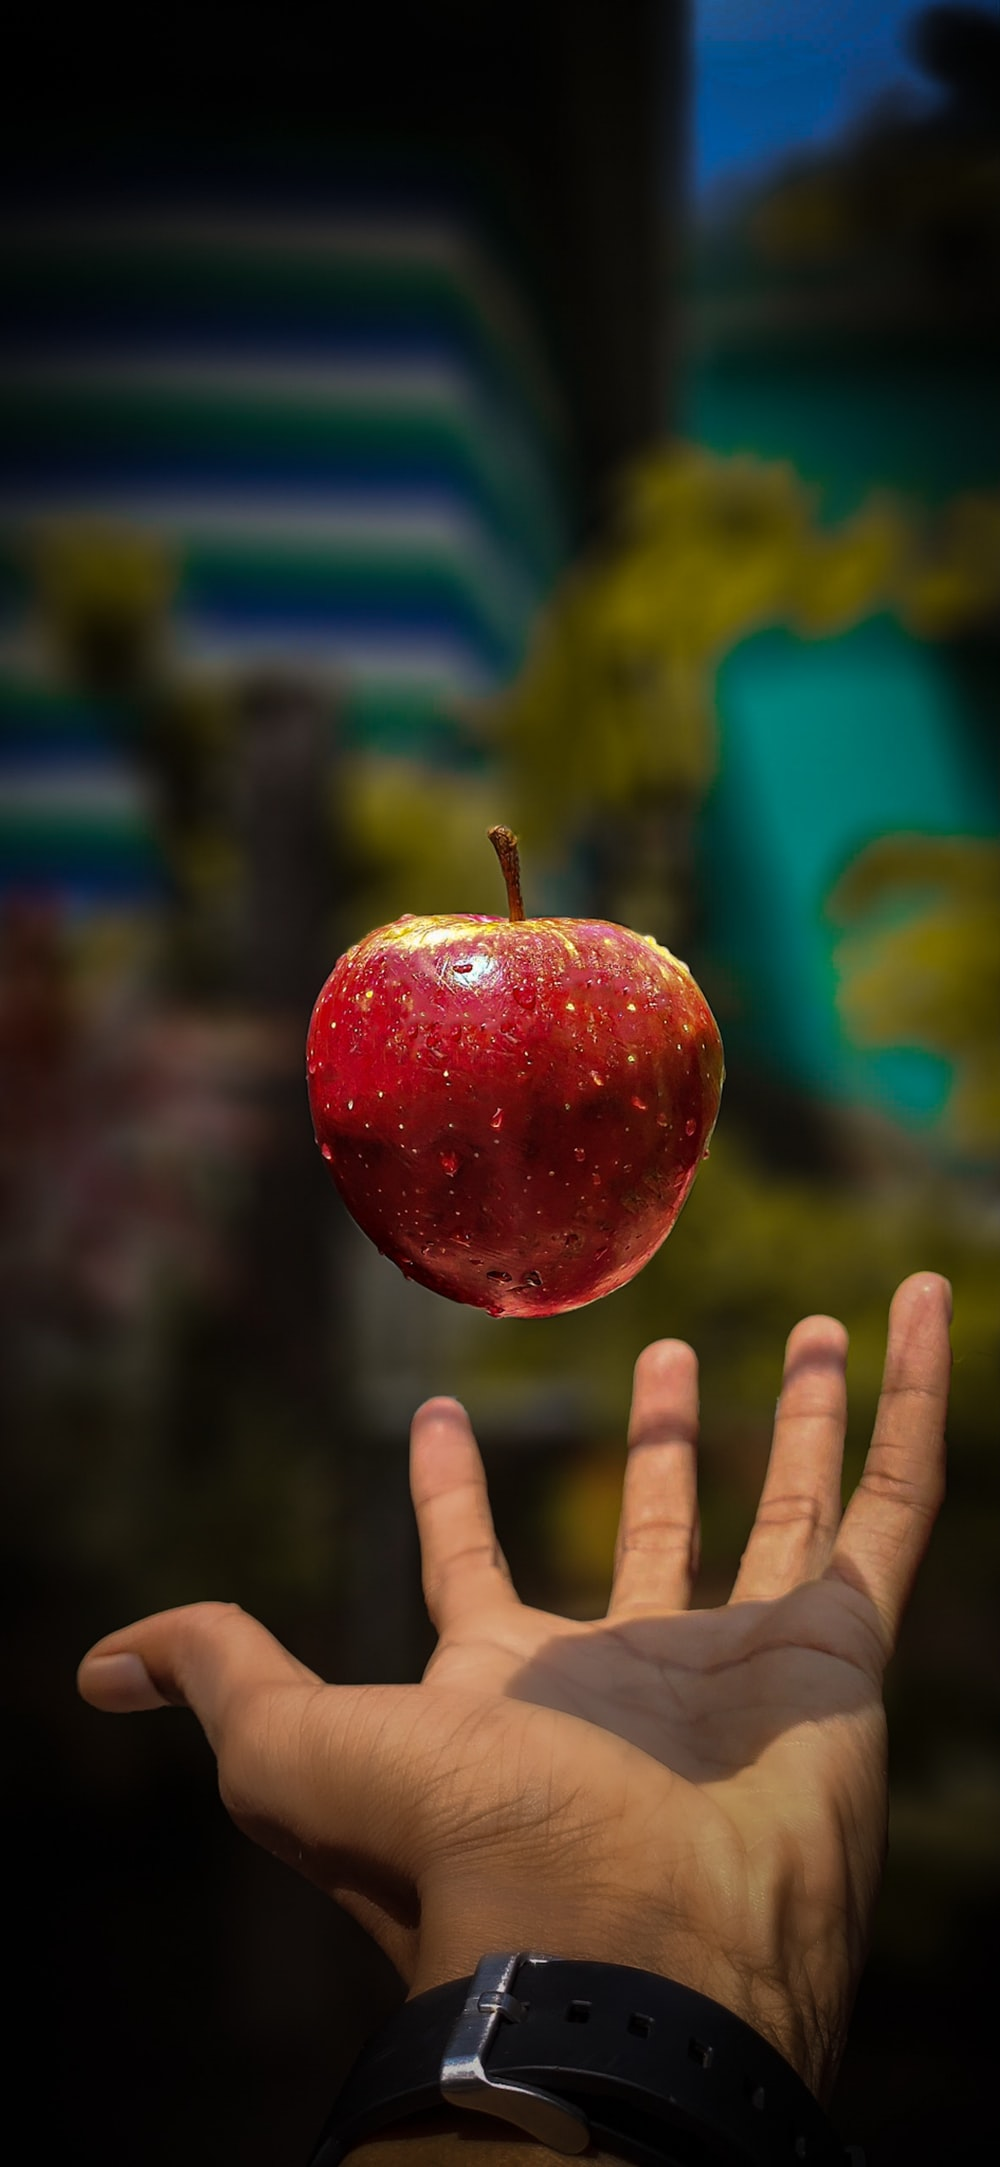 red apple near person's hand